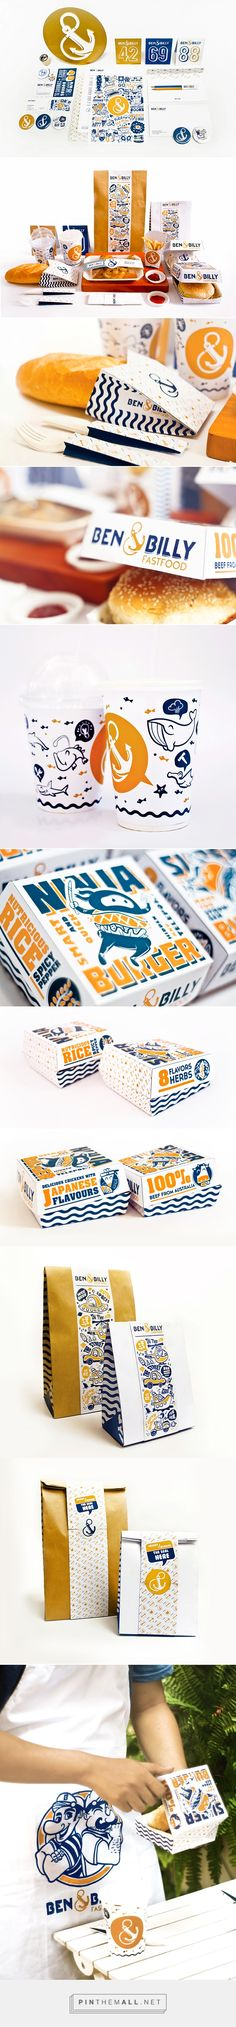 Ben & Billy on Behance curated by Packaging Diva PD. Lunchtime identity packaging branding. Fast food packaging at it's finest : )